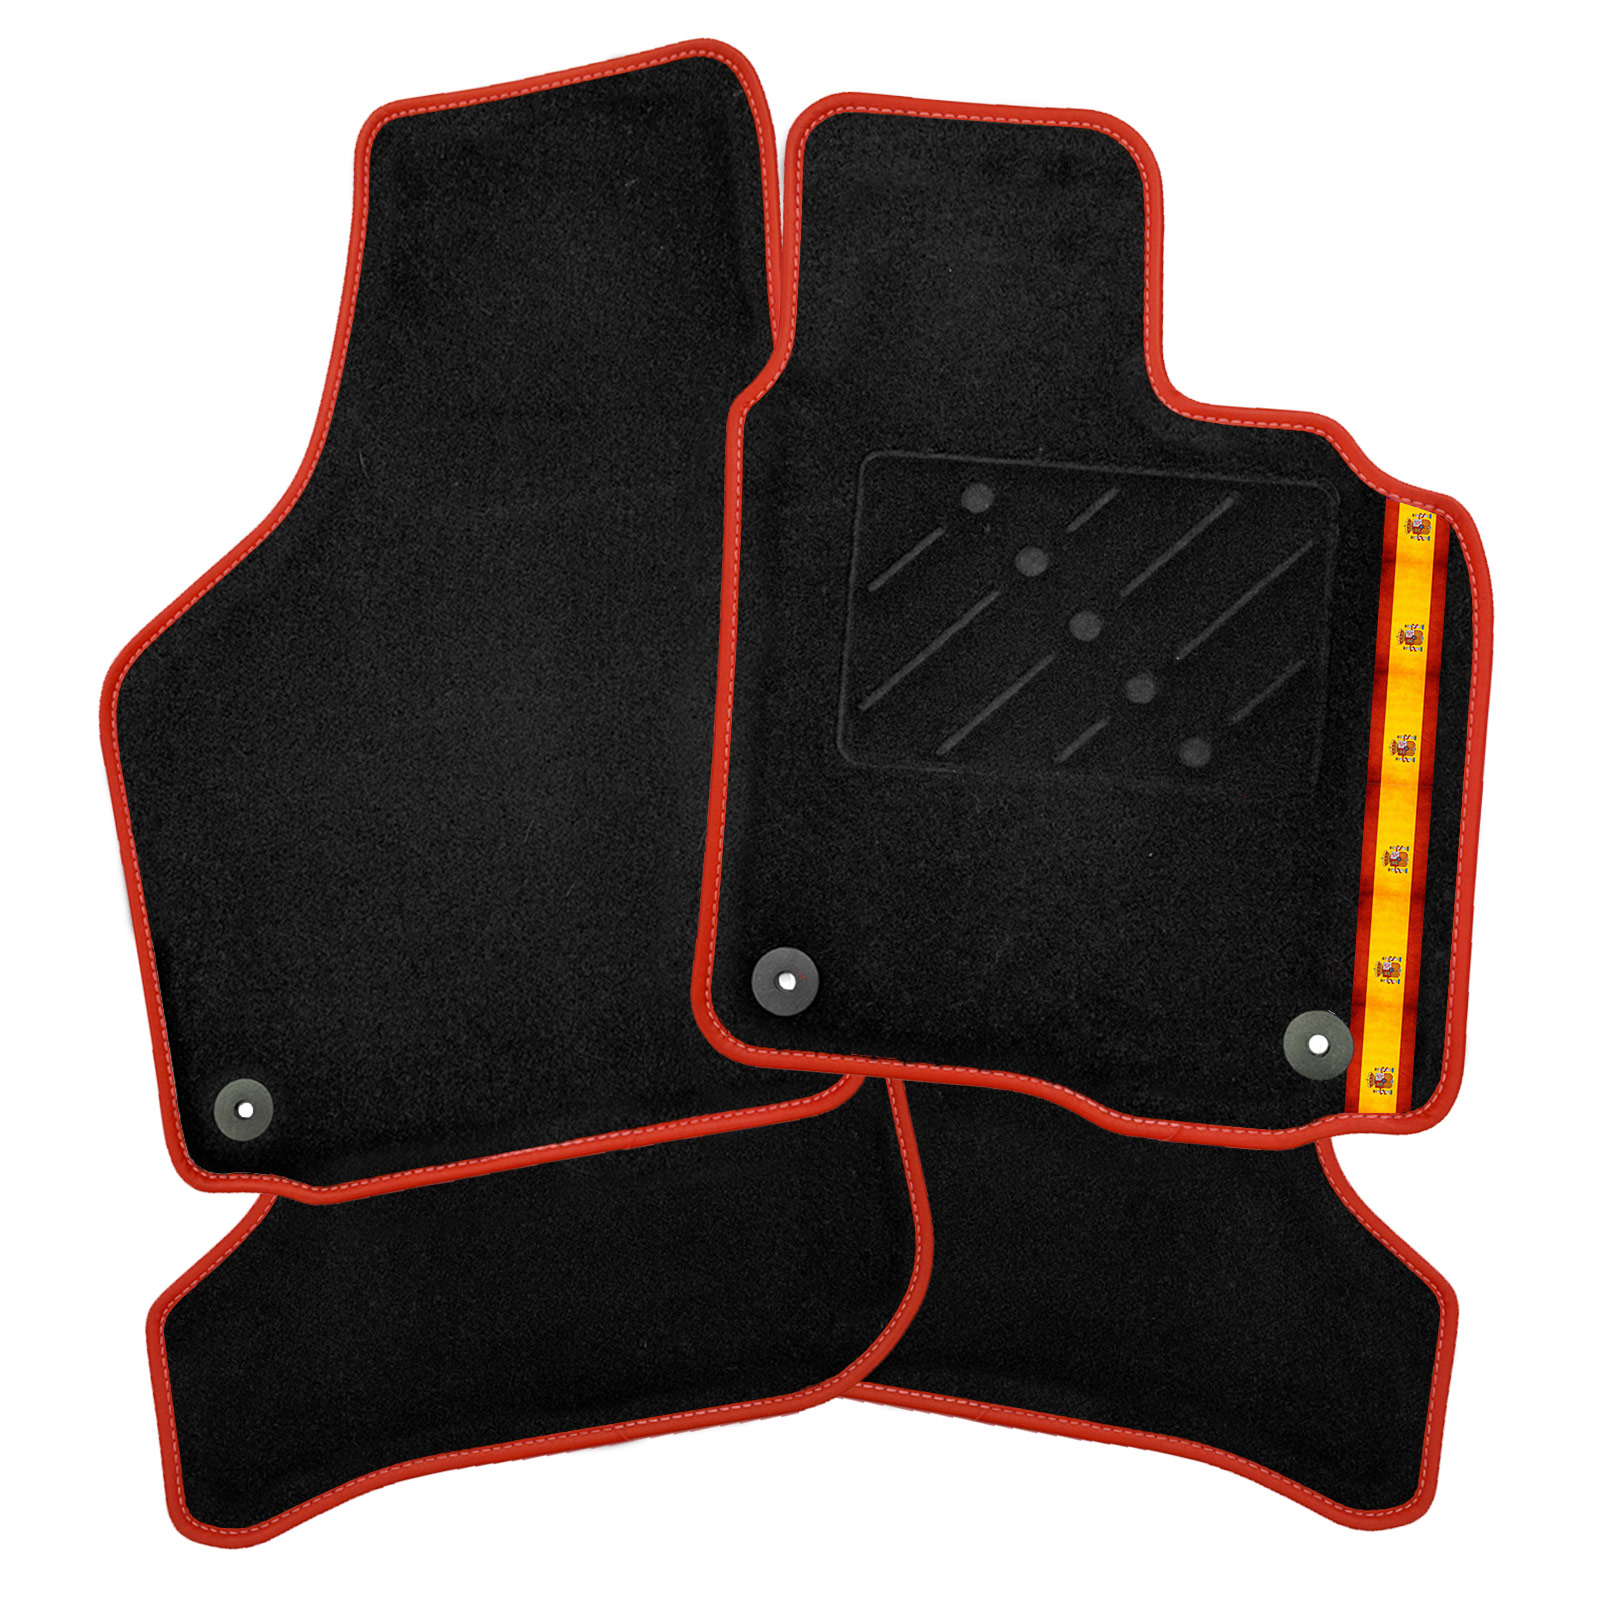 Marvelous Image Is Loading Aston Martin V8 Vantage 2005 Tailored Car Mats